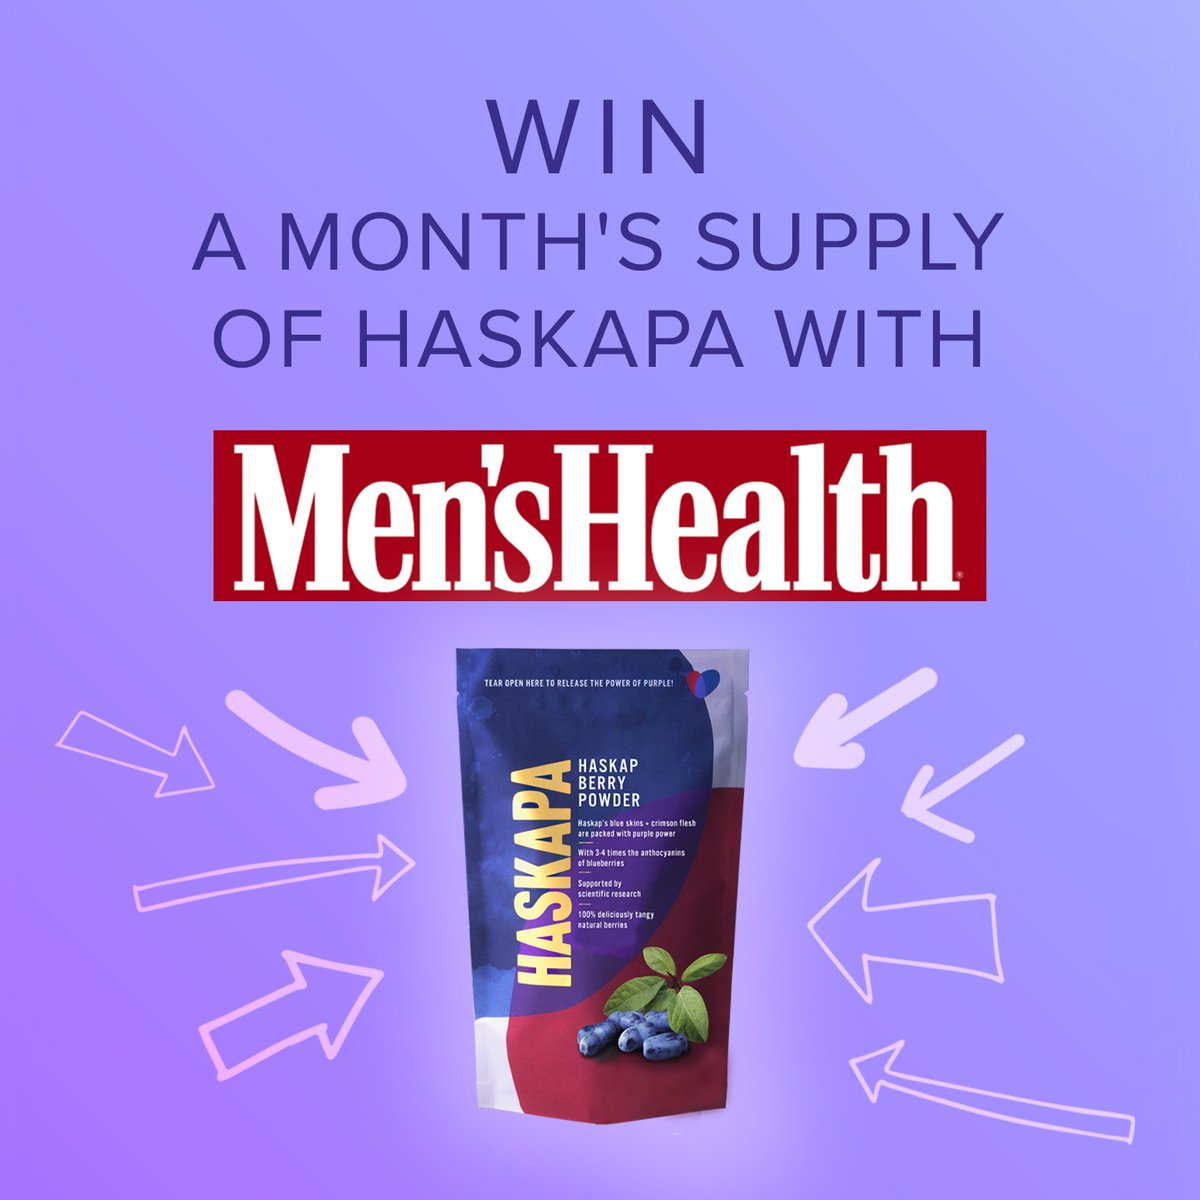 RT @Haskapa: We're partnering with @MensHealthUK  for a special competition to kickstart 2021 - sign up here: https://t.co/kBs07FxOrF  #giveaway #competition #competitionalert #veganuary #veganuary2021 #healthyjanuary #NewYearNewMe #healthy #superberry … https://t.co/8pmU9Y1aCA